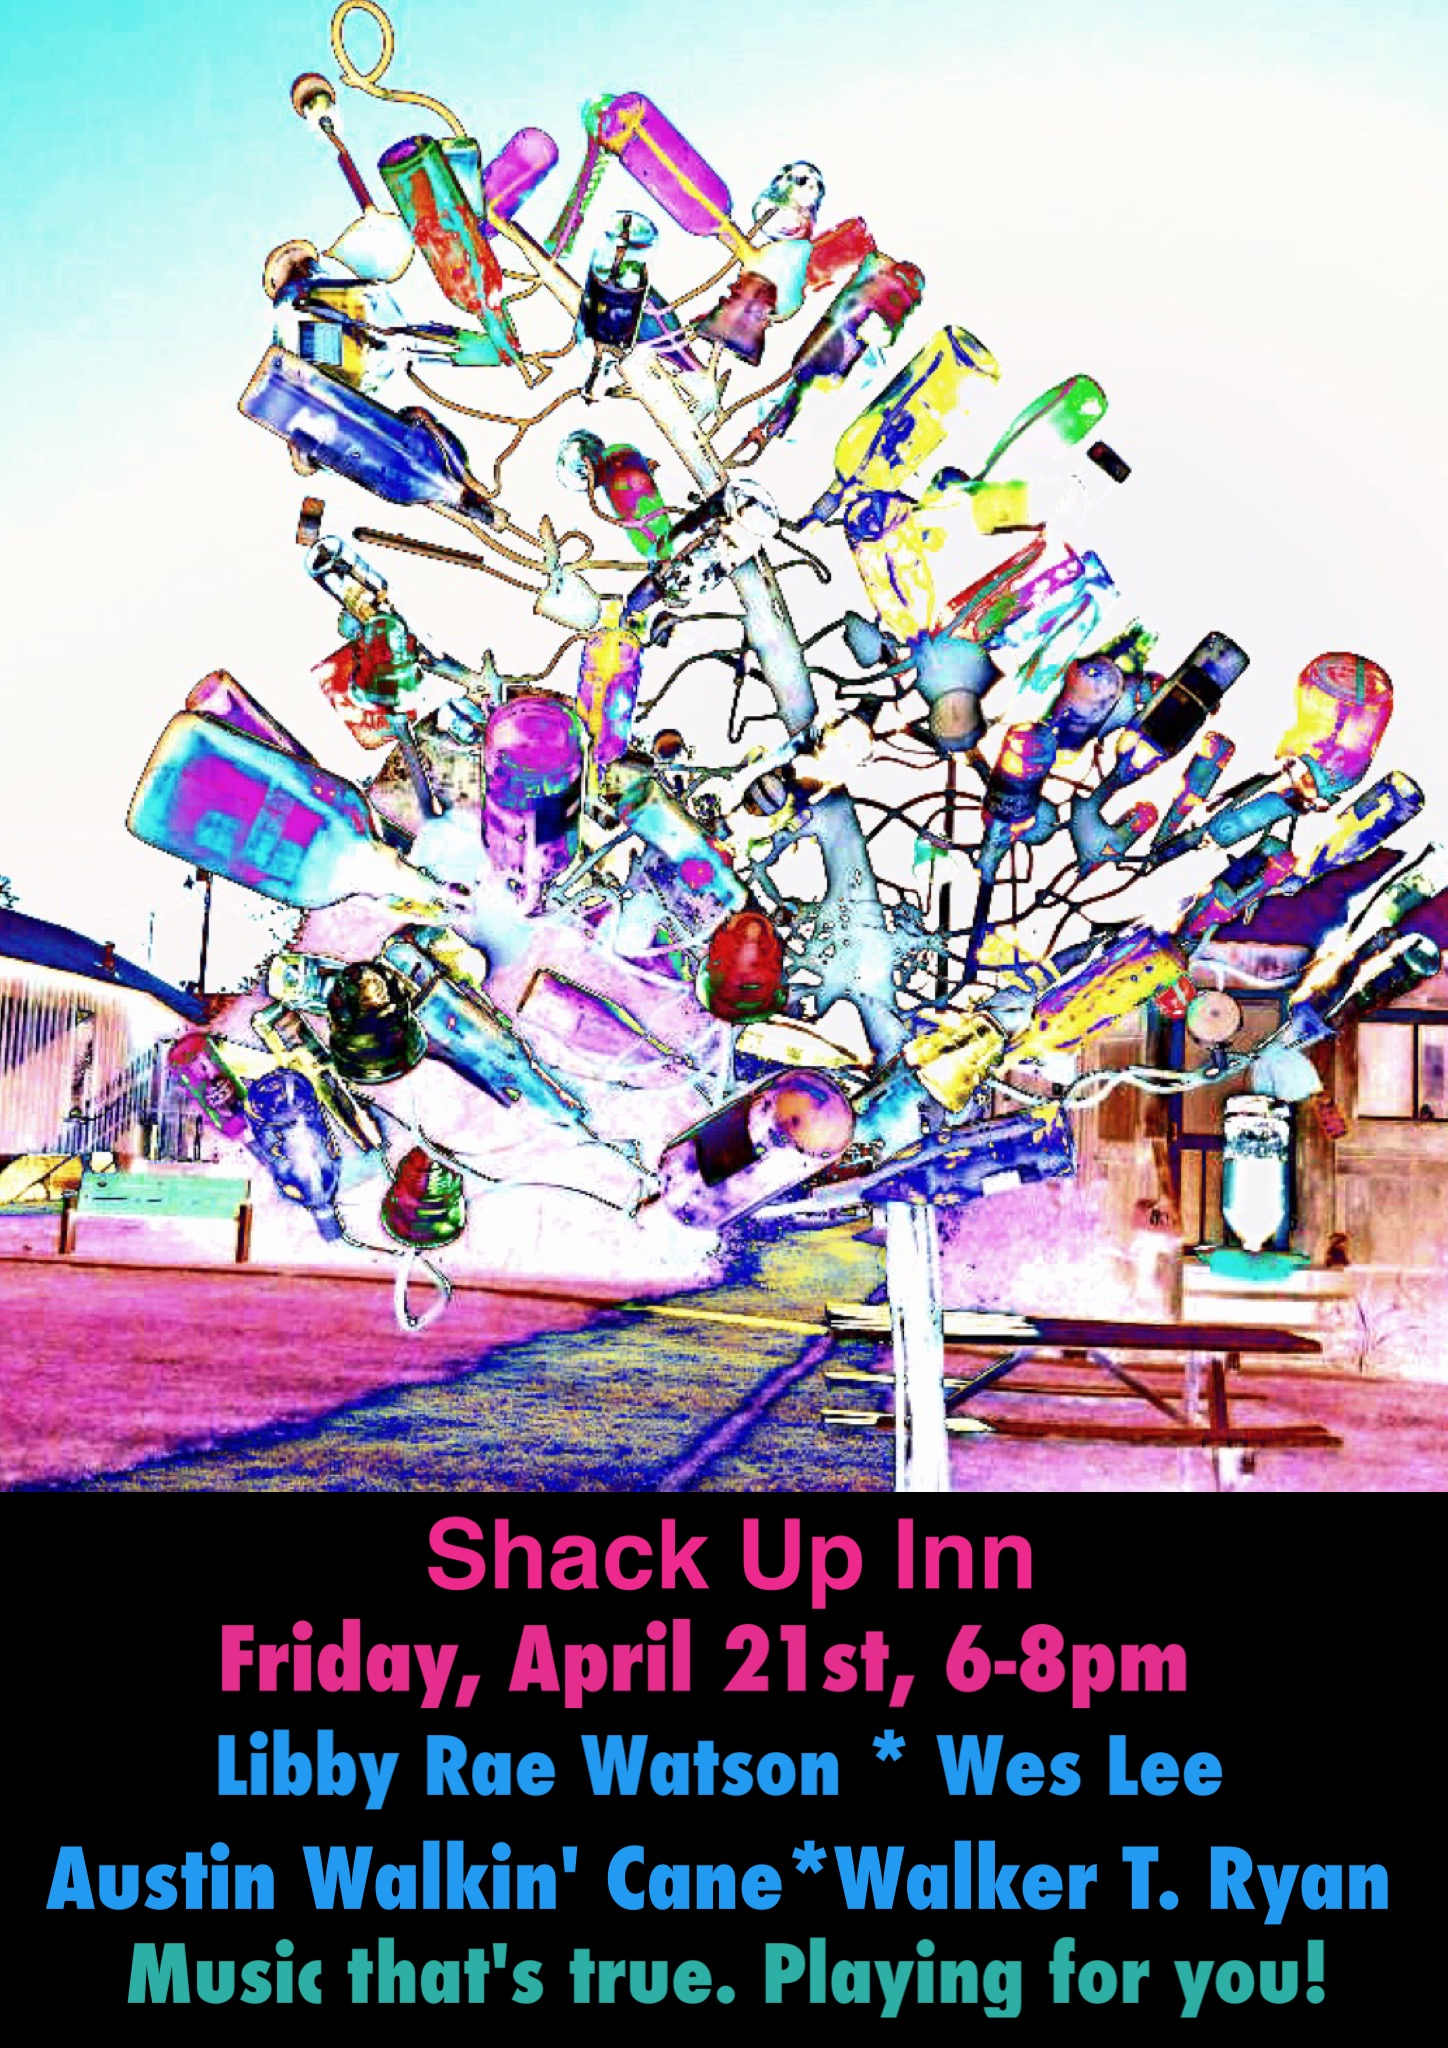 Coming up Friday, April 21st! Shack Up Inn! Clarksdale, MS, y'all!!!